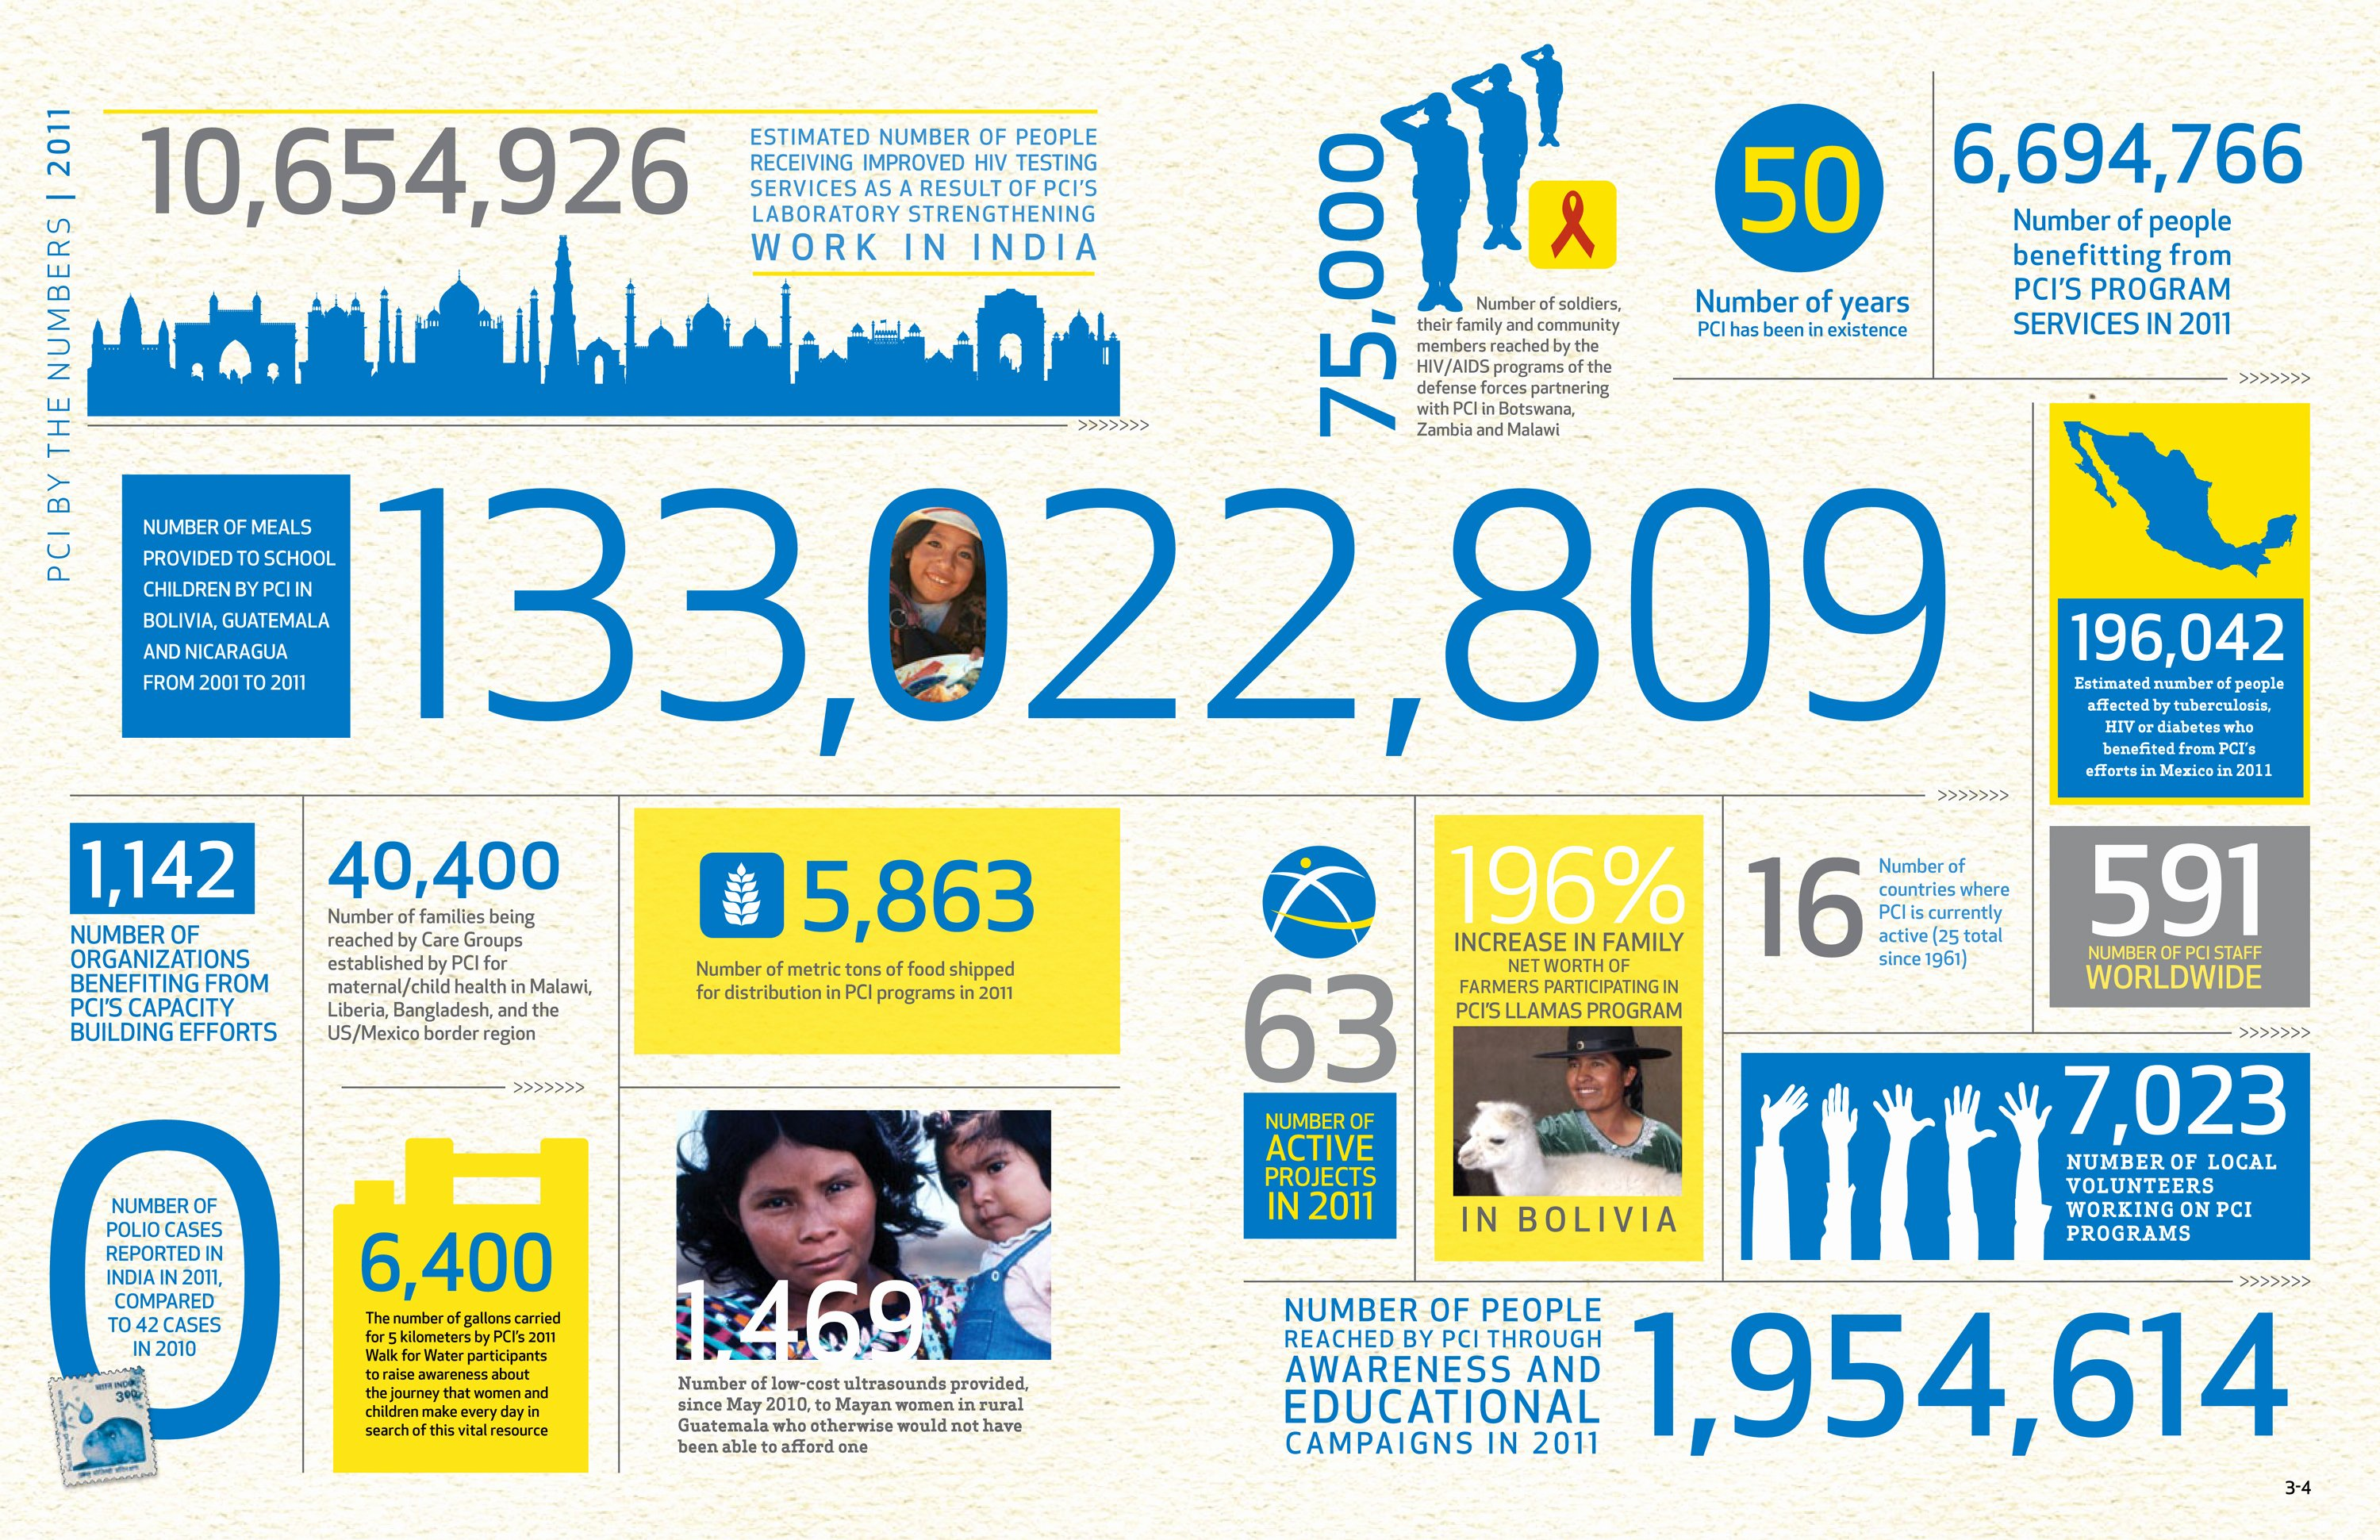 Visme Introduces New Infographic Templates for Non Profits